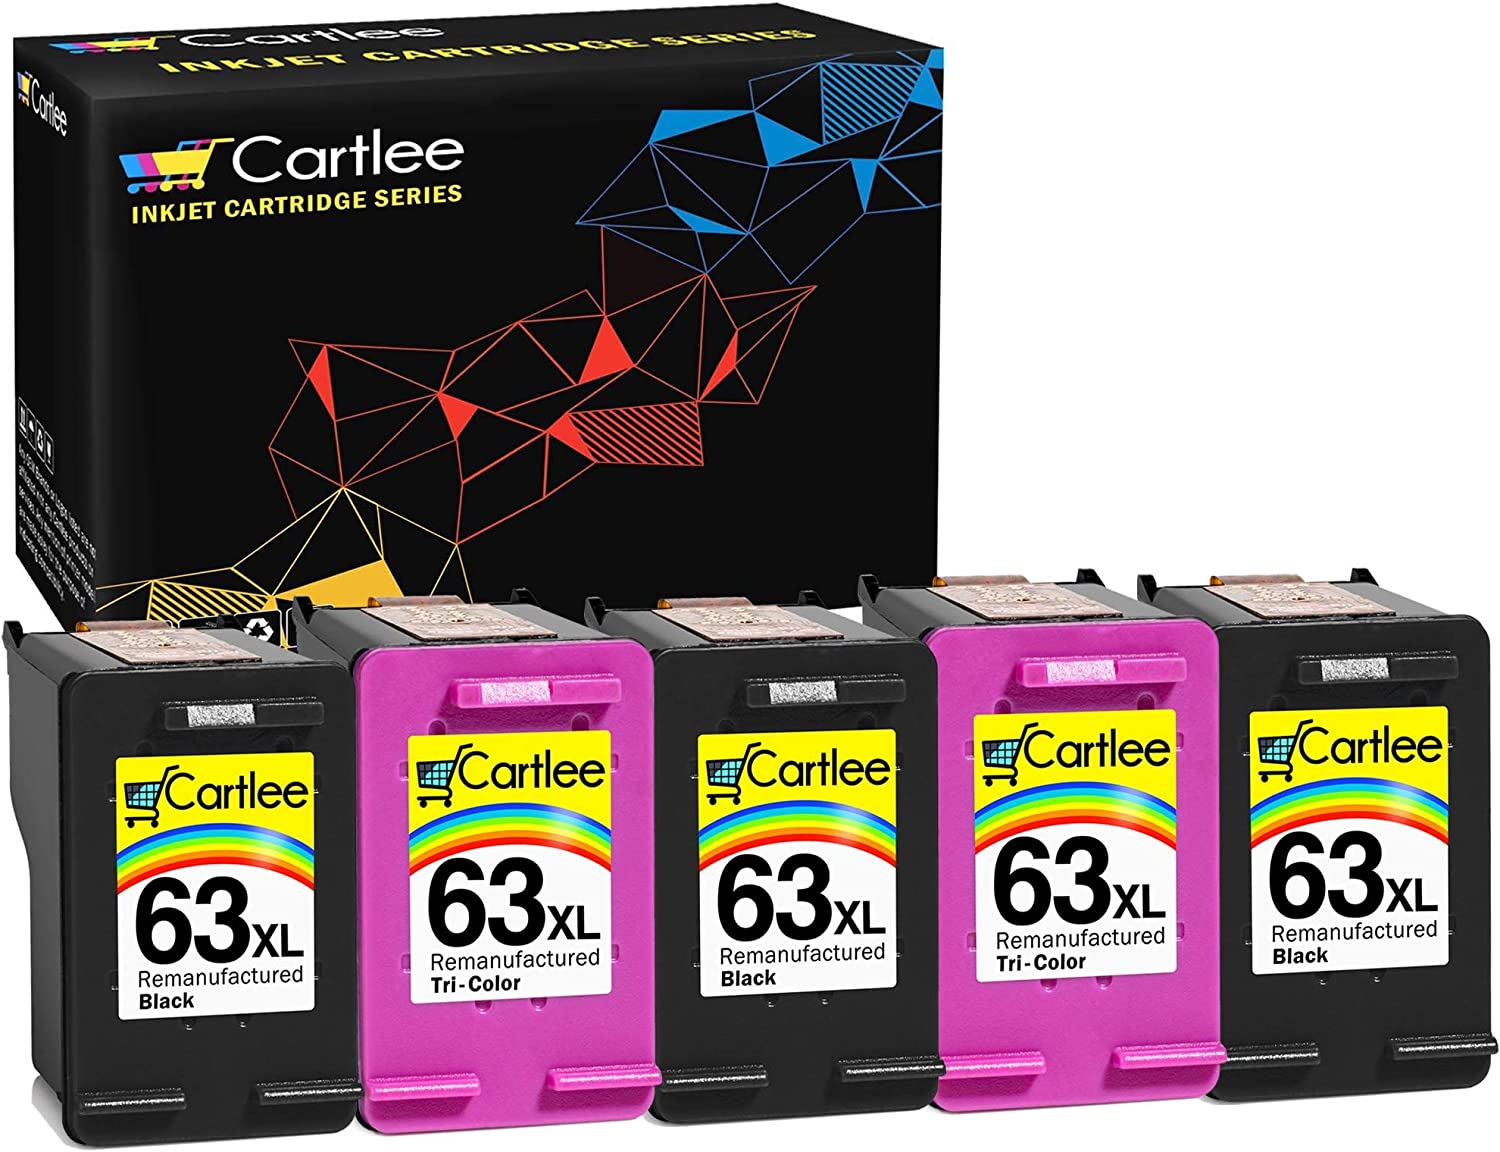 Cartlee 5 Remanufactured 63XL 63 XL High Yield Ink Cartridges for HP Envy 4512 4520 DeskJet 3632 2130 1110 1112 2132 3630 3634 3636 3637 OfficeJet 3830 3833 4650 4652 5255 5258 Printer Black, Color